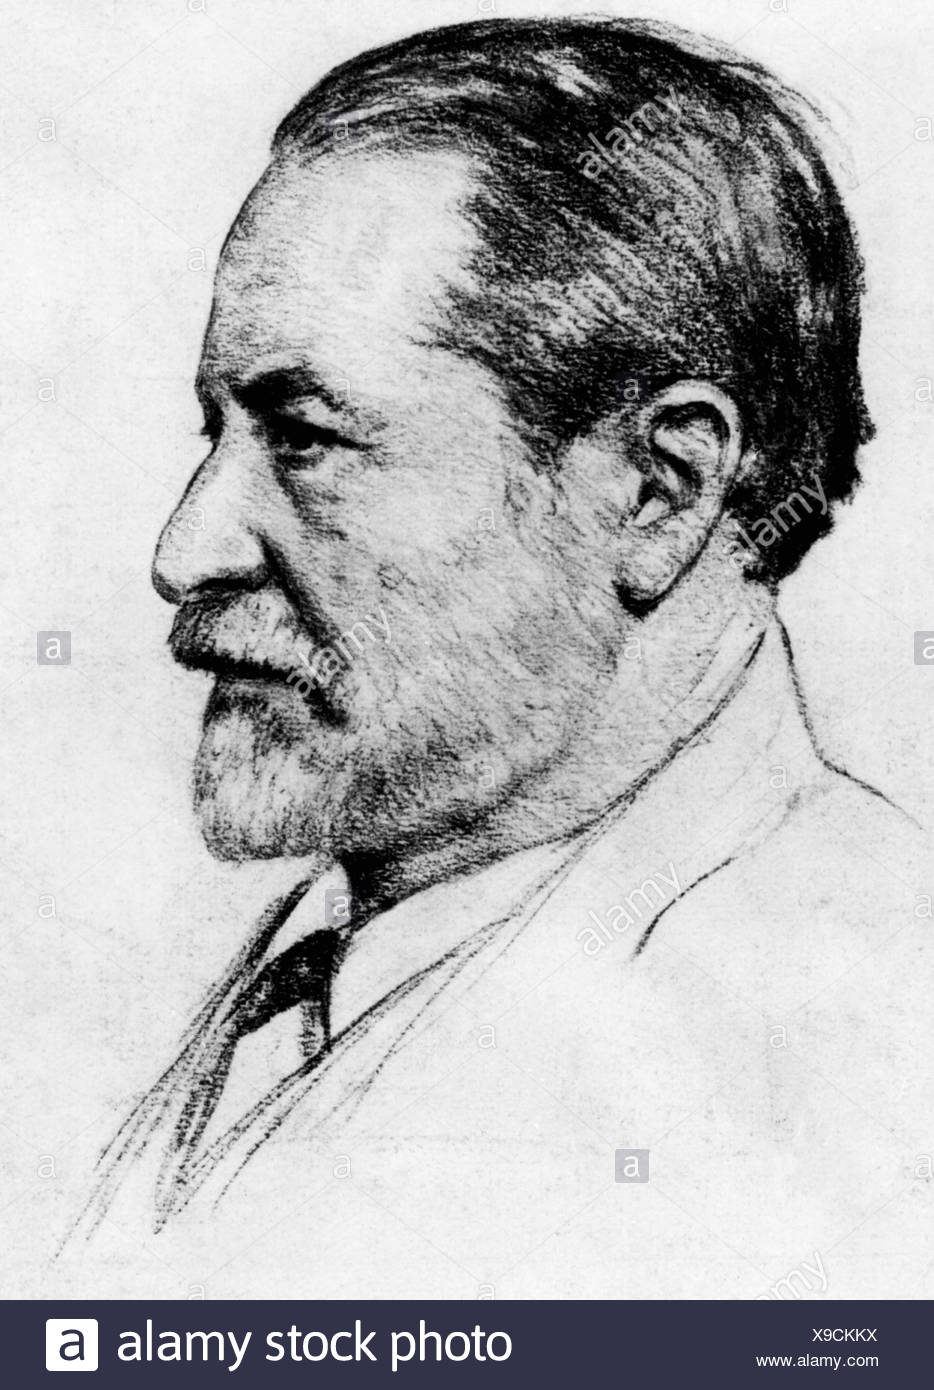 Freud, Sigmund, 6.5.1856 - 23.9.1939, Austrian physician, founder of the psychoanalytic school of psychology, portrait, drawing by John Lipp, Munich, 1925, Additional-Rights-Clearances-NA - Stock Image